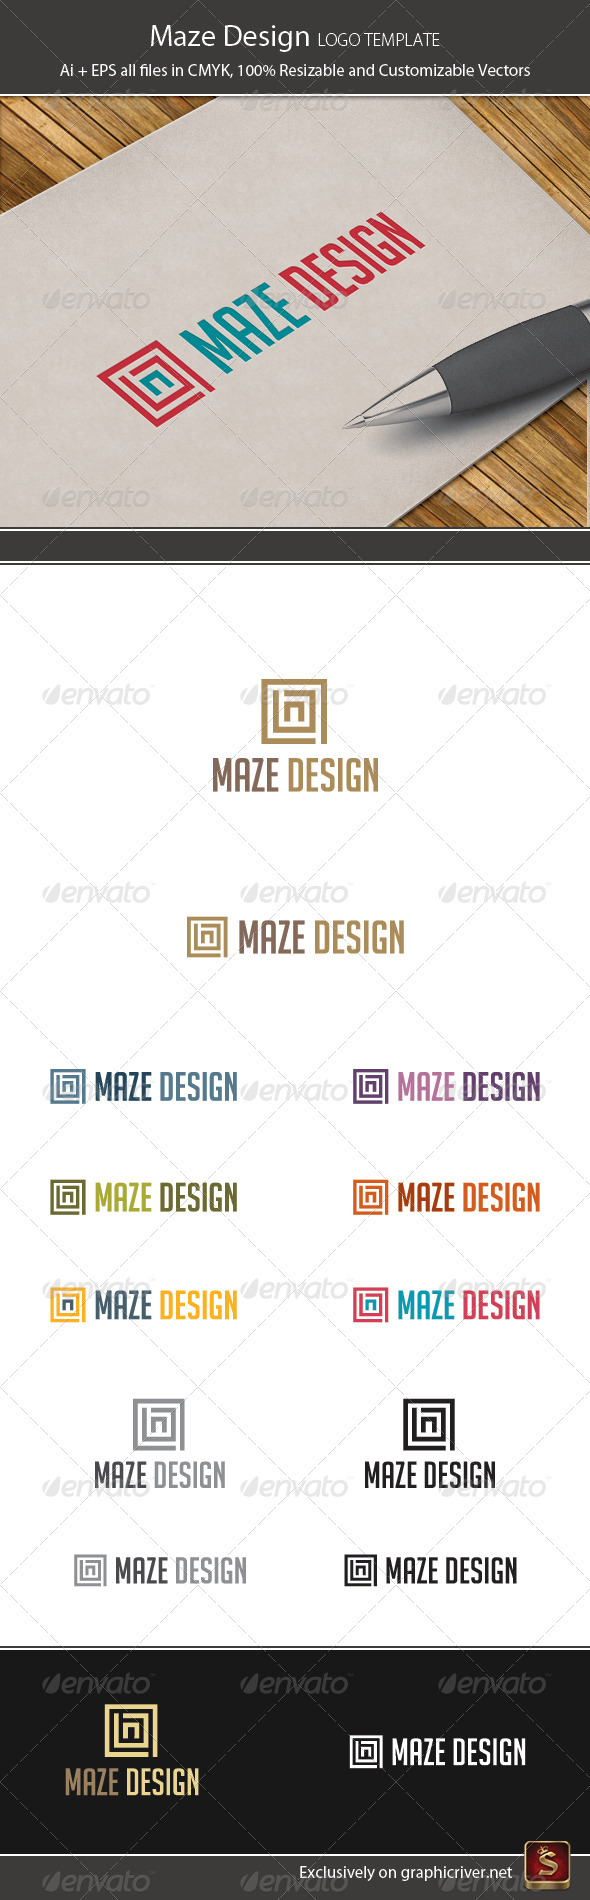 Maze Design Logo Template - Vector Abstract